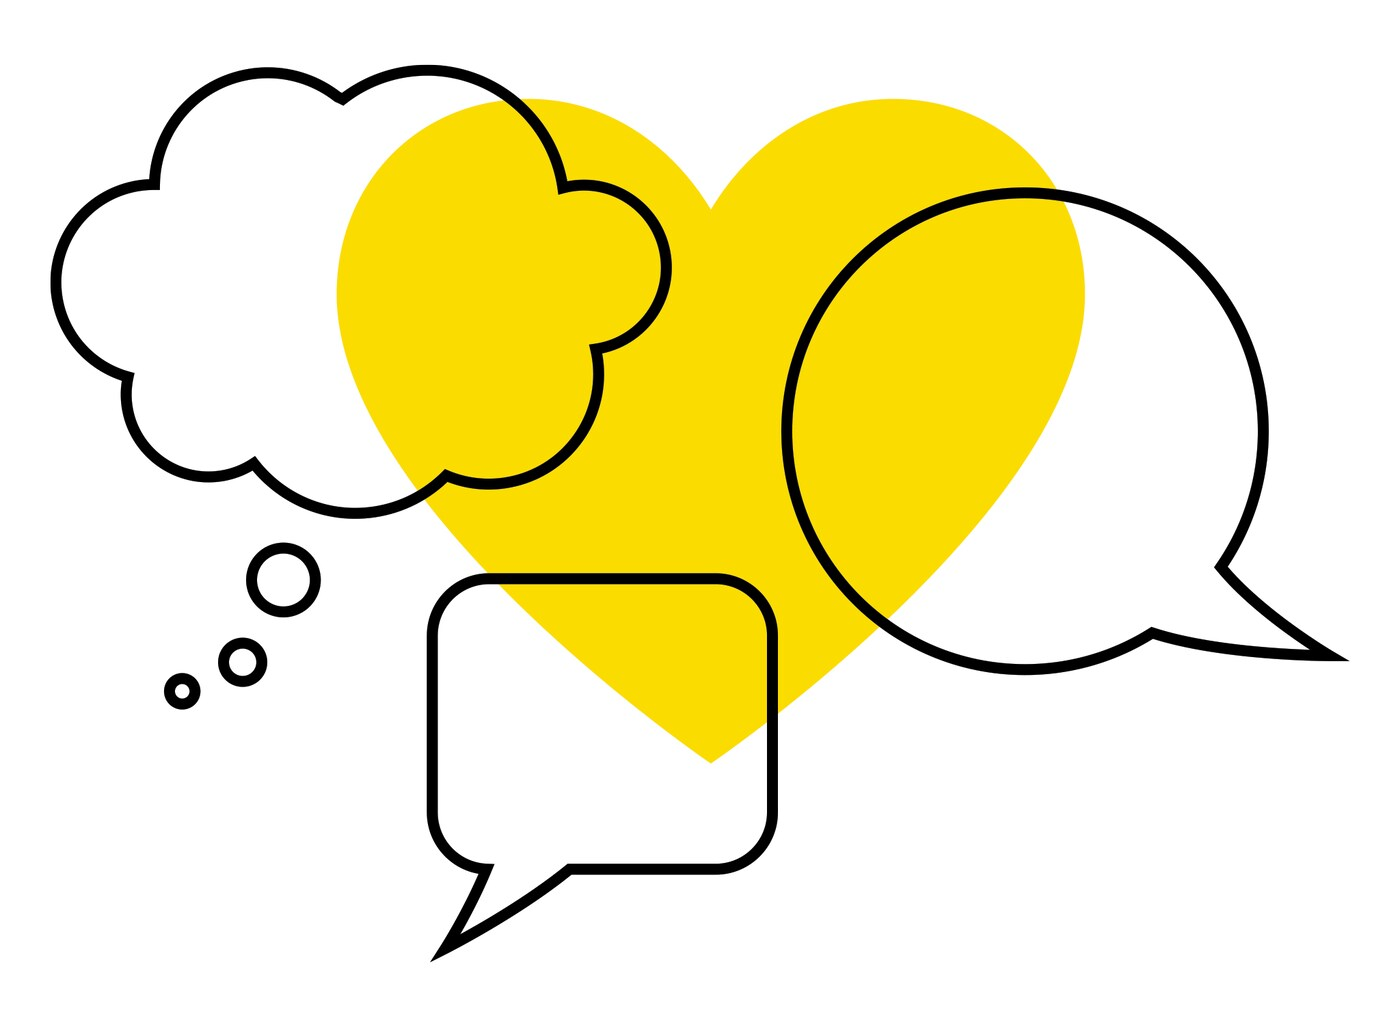 Link to 'Together with Kindness during COVID-16' - image of a yellow heart with three conversation bubbles superimposed.